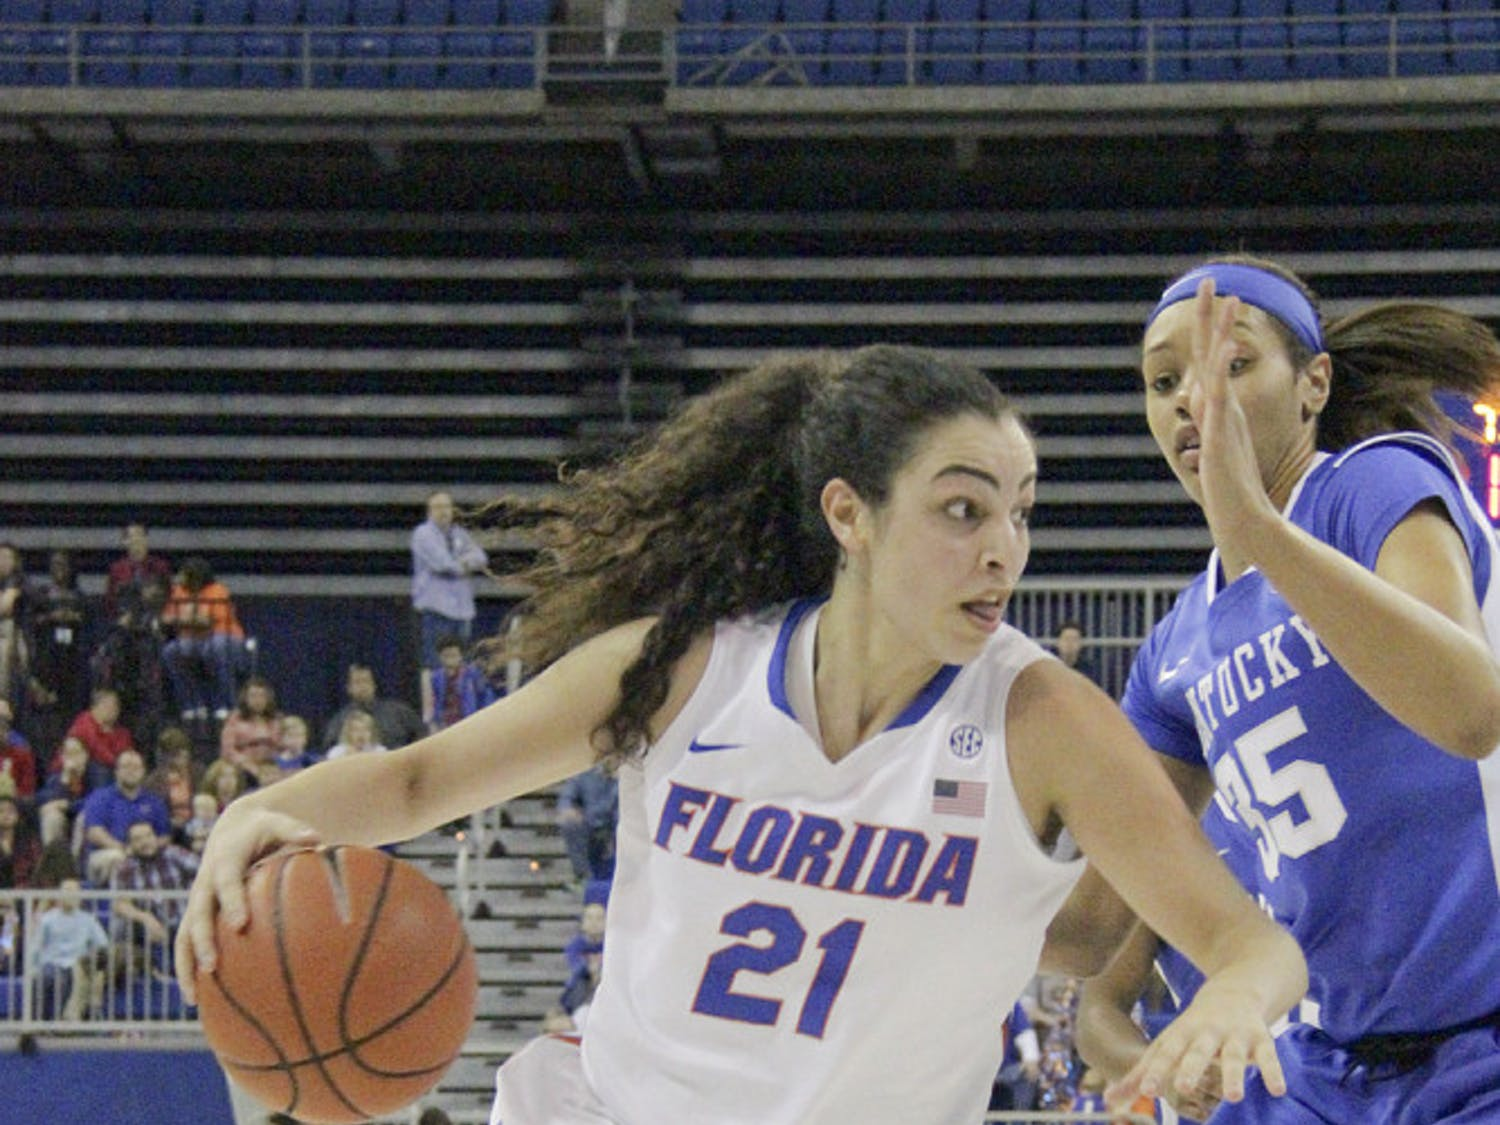 Eleanna Christinaki drives into the paint during Florida's 85-79 win over Kentucky on Jan. 31, 2016, in the O'Connell Center.